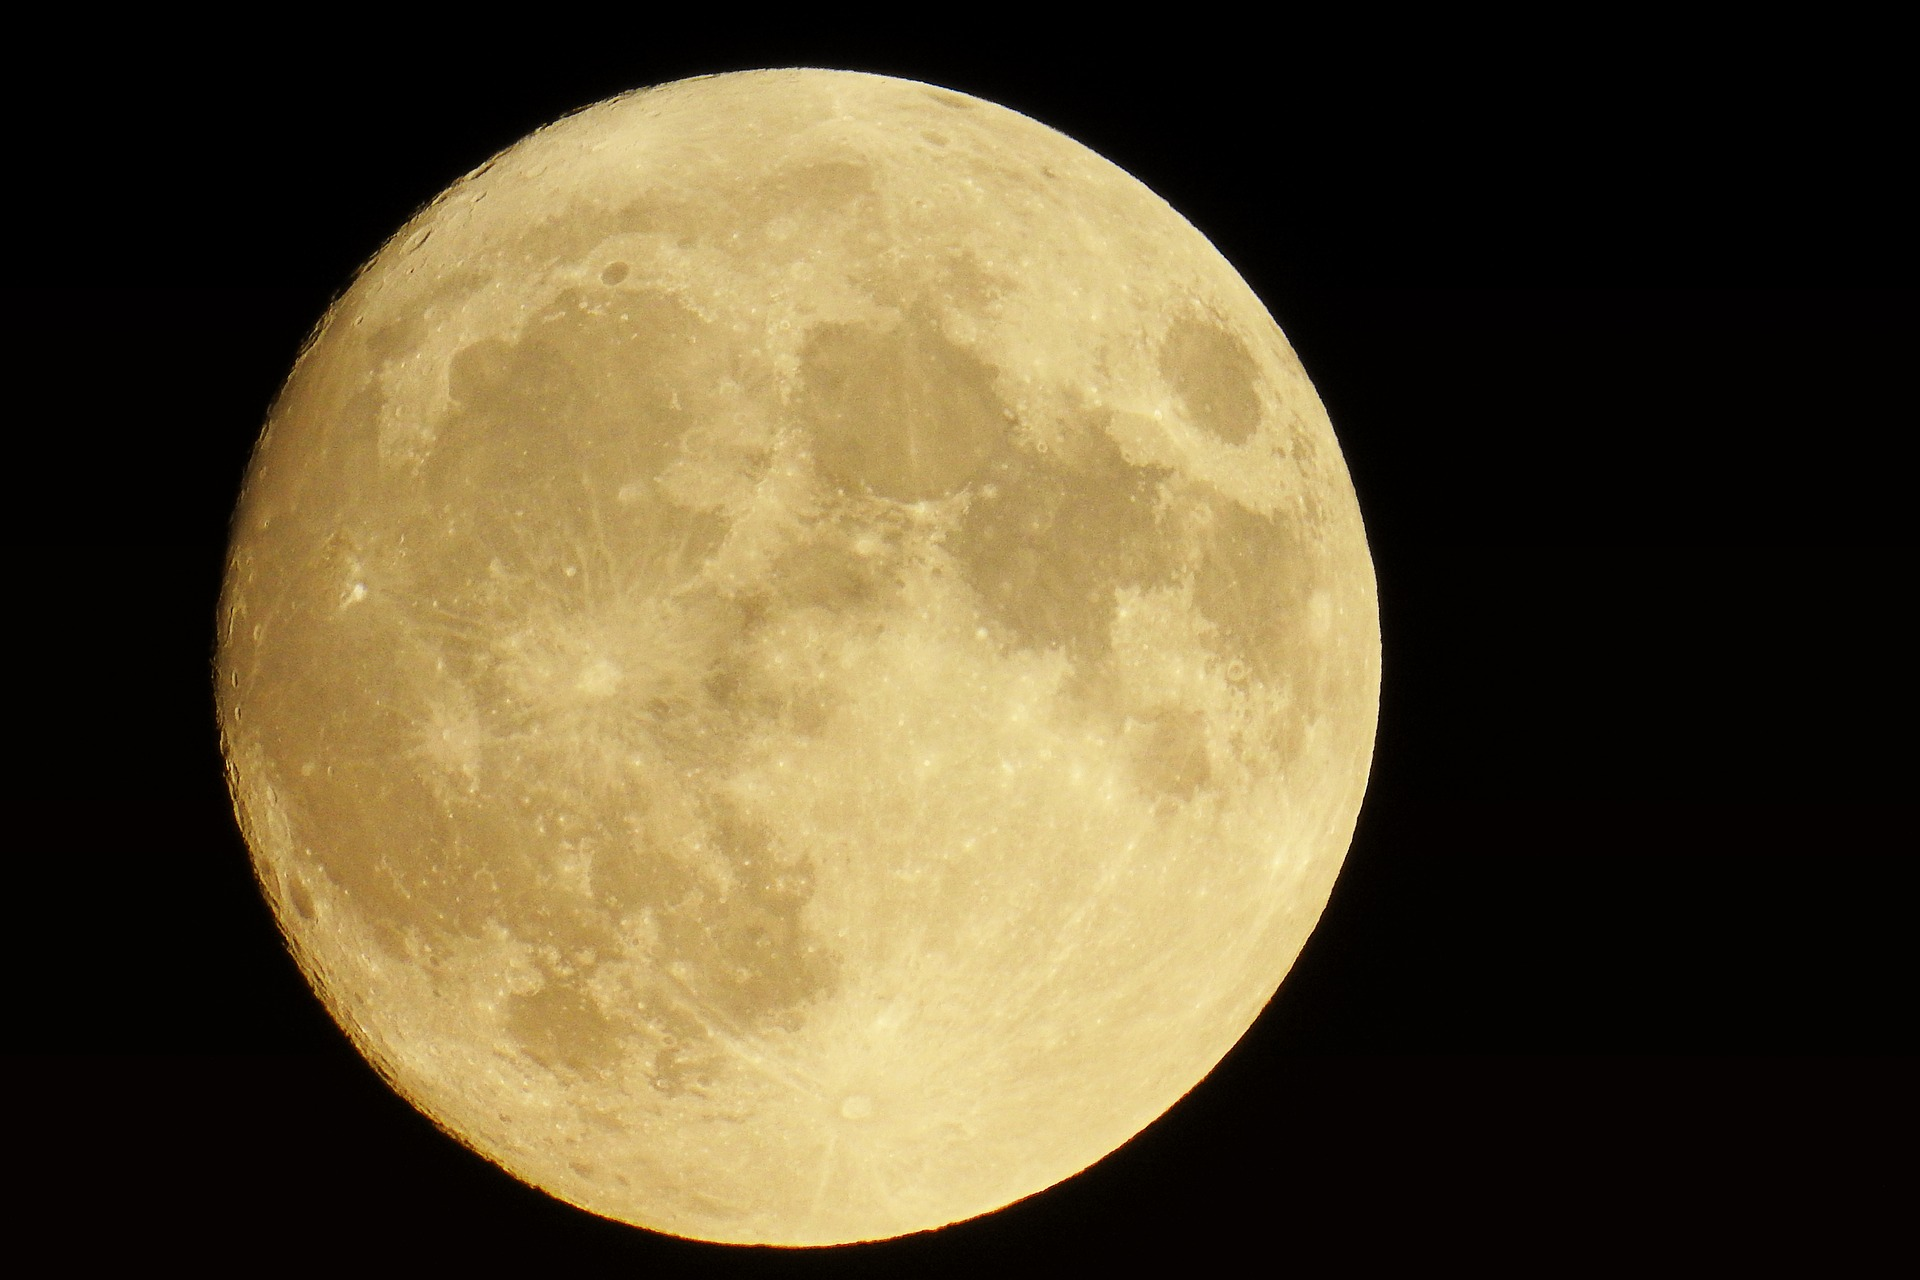 image of a light gold full moon